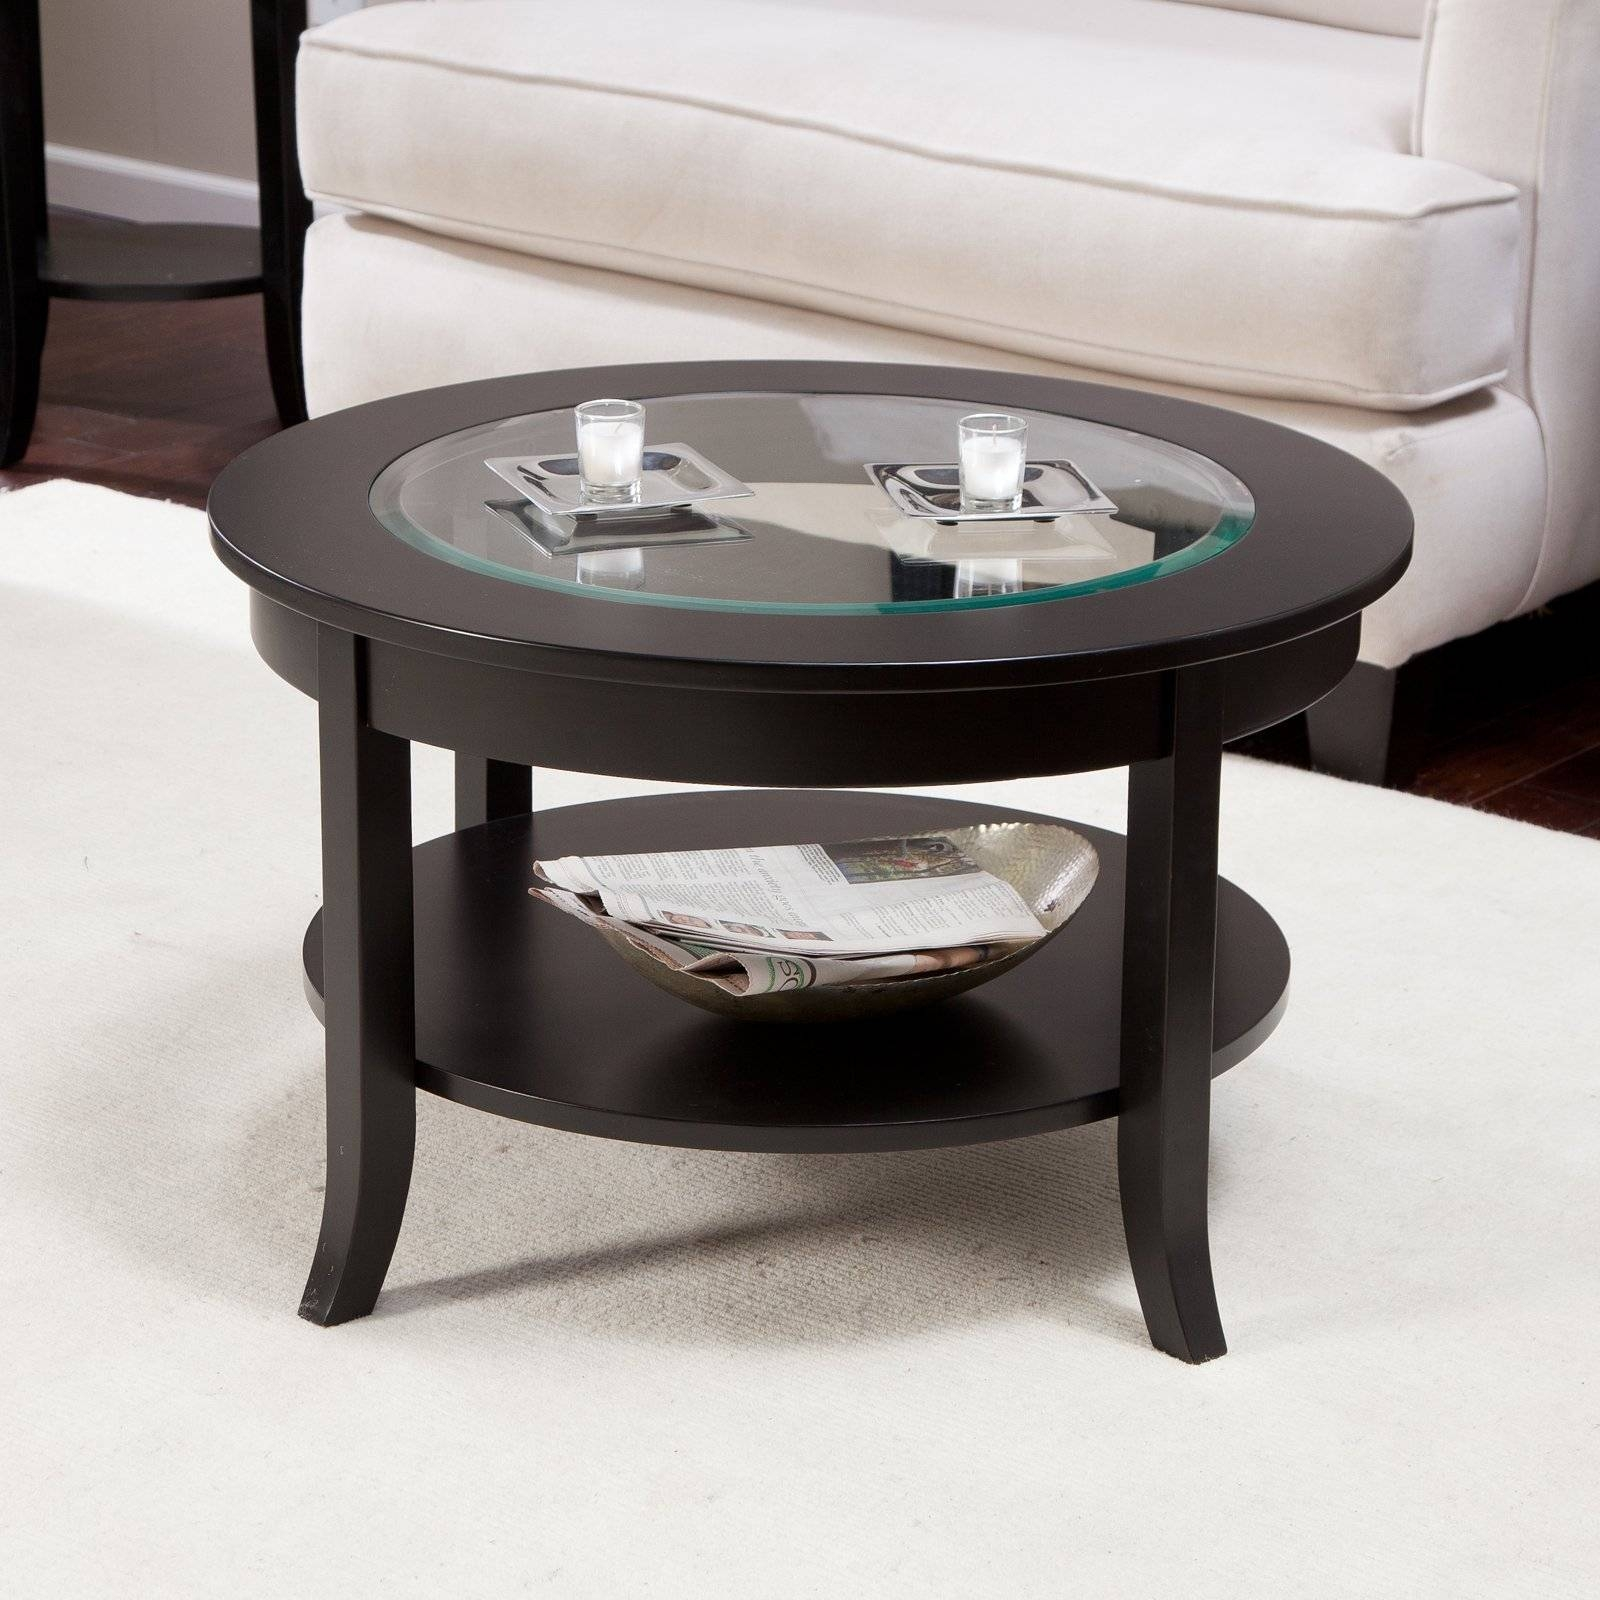 Glass Coffee Tables: Astounding Modern Small Black Glass Coffee intended for Round Wood And Glass Coffee Tables (Image 6 of 15)